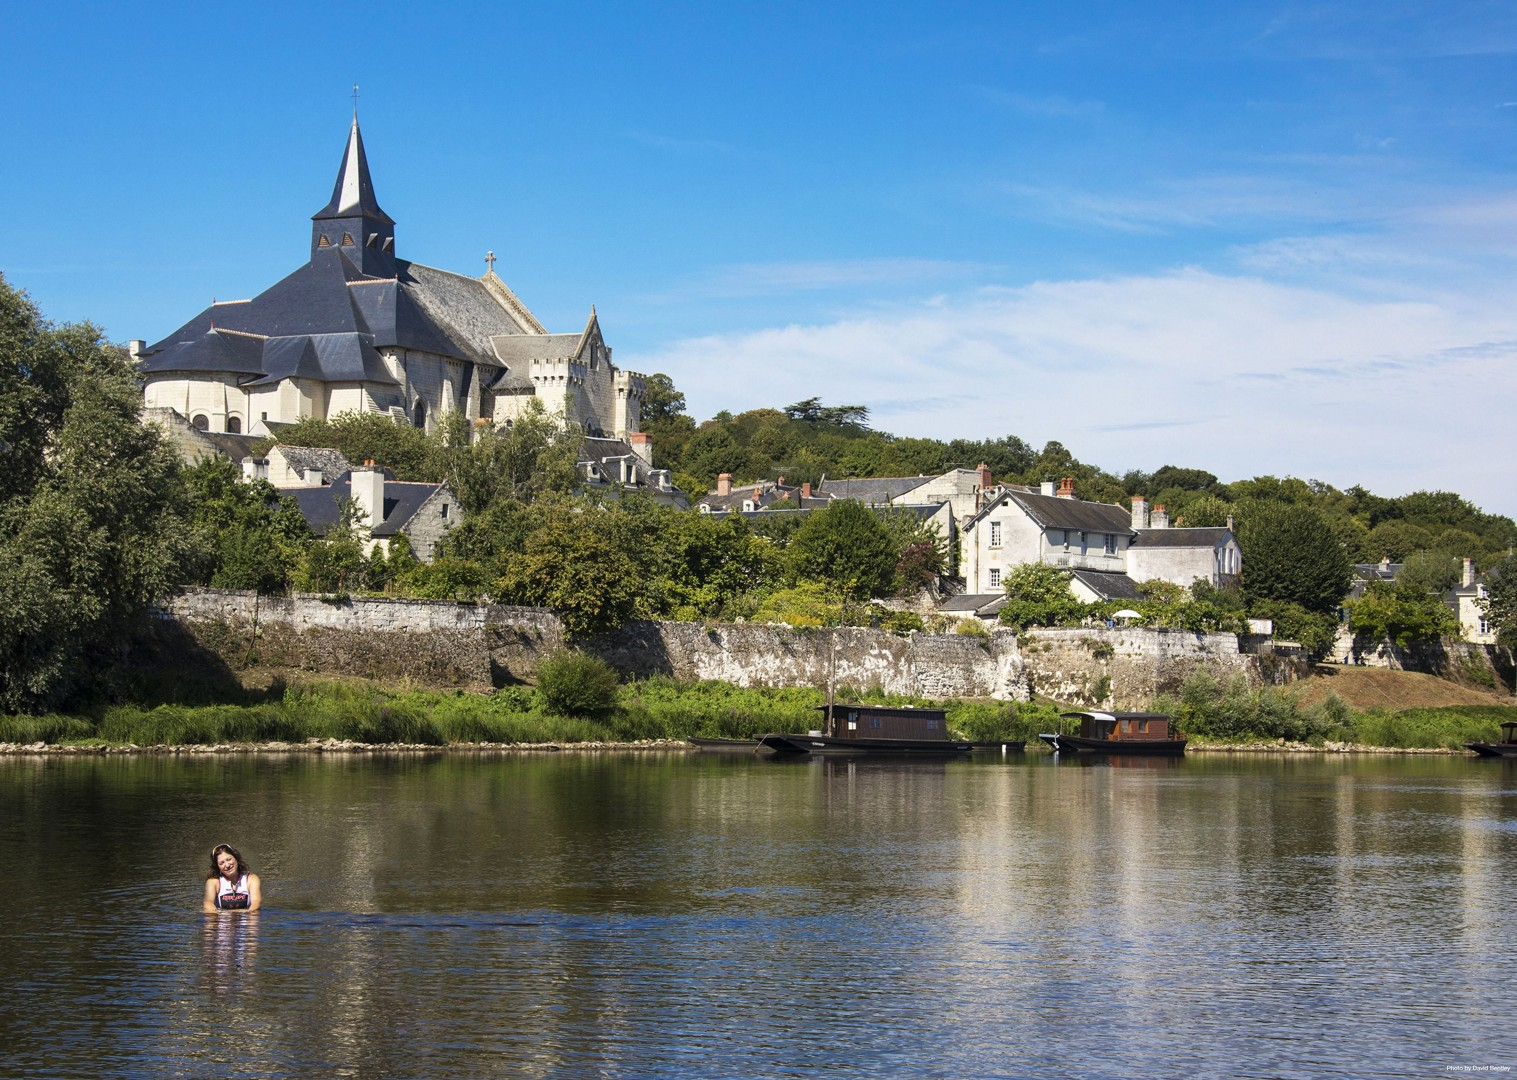 loire-valley-cycling-holiday.jpg - France - Valley of the Loire - Self-Guided Leisure Cycling Holiday - Leisure Cycling